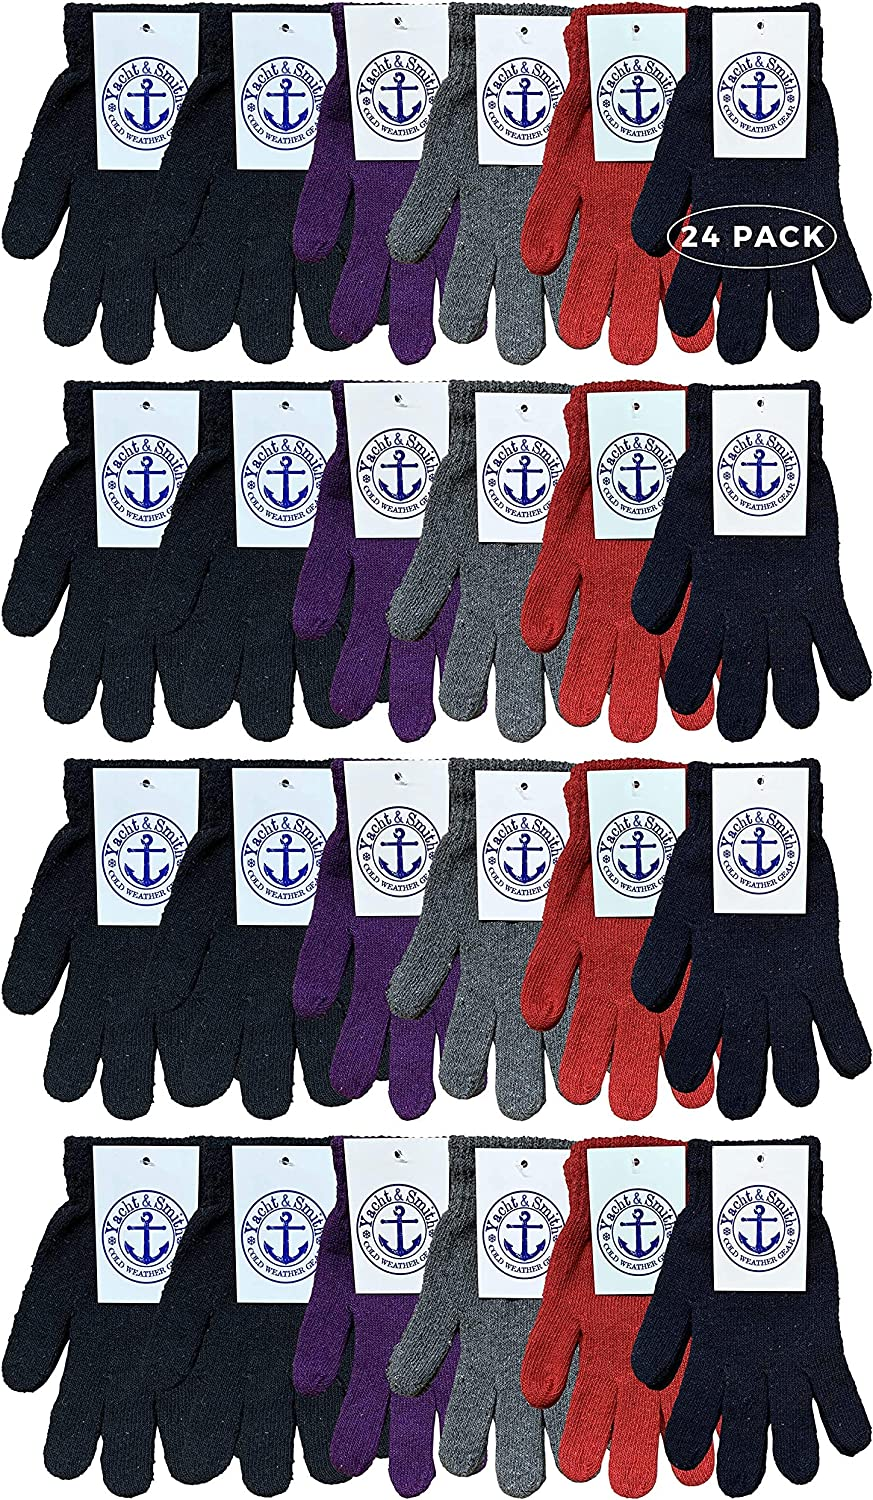 Wholesale Bulk Winter Gloves For Warm Pack Winte New mail 5 ☆ very popular order Woman Men